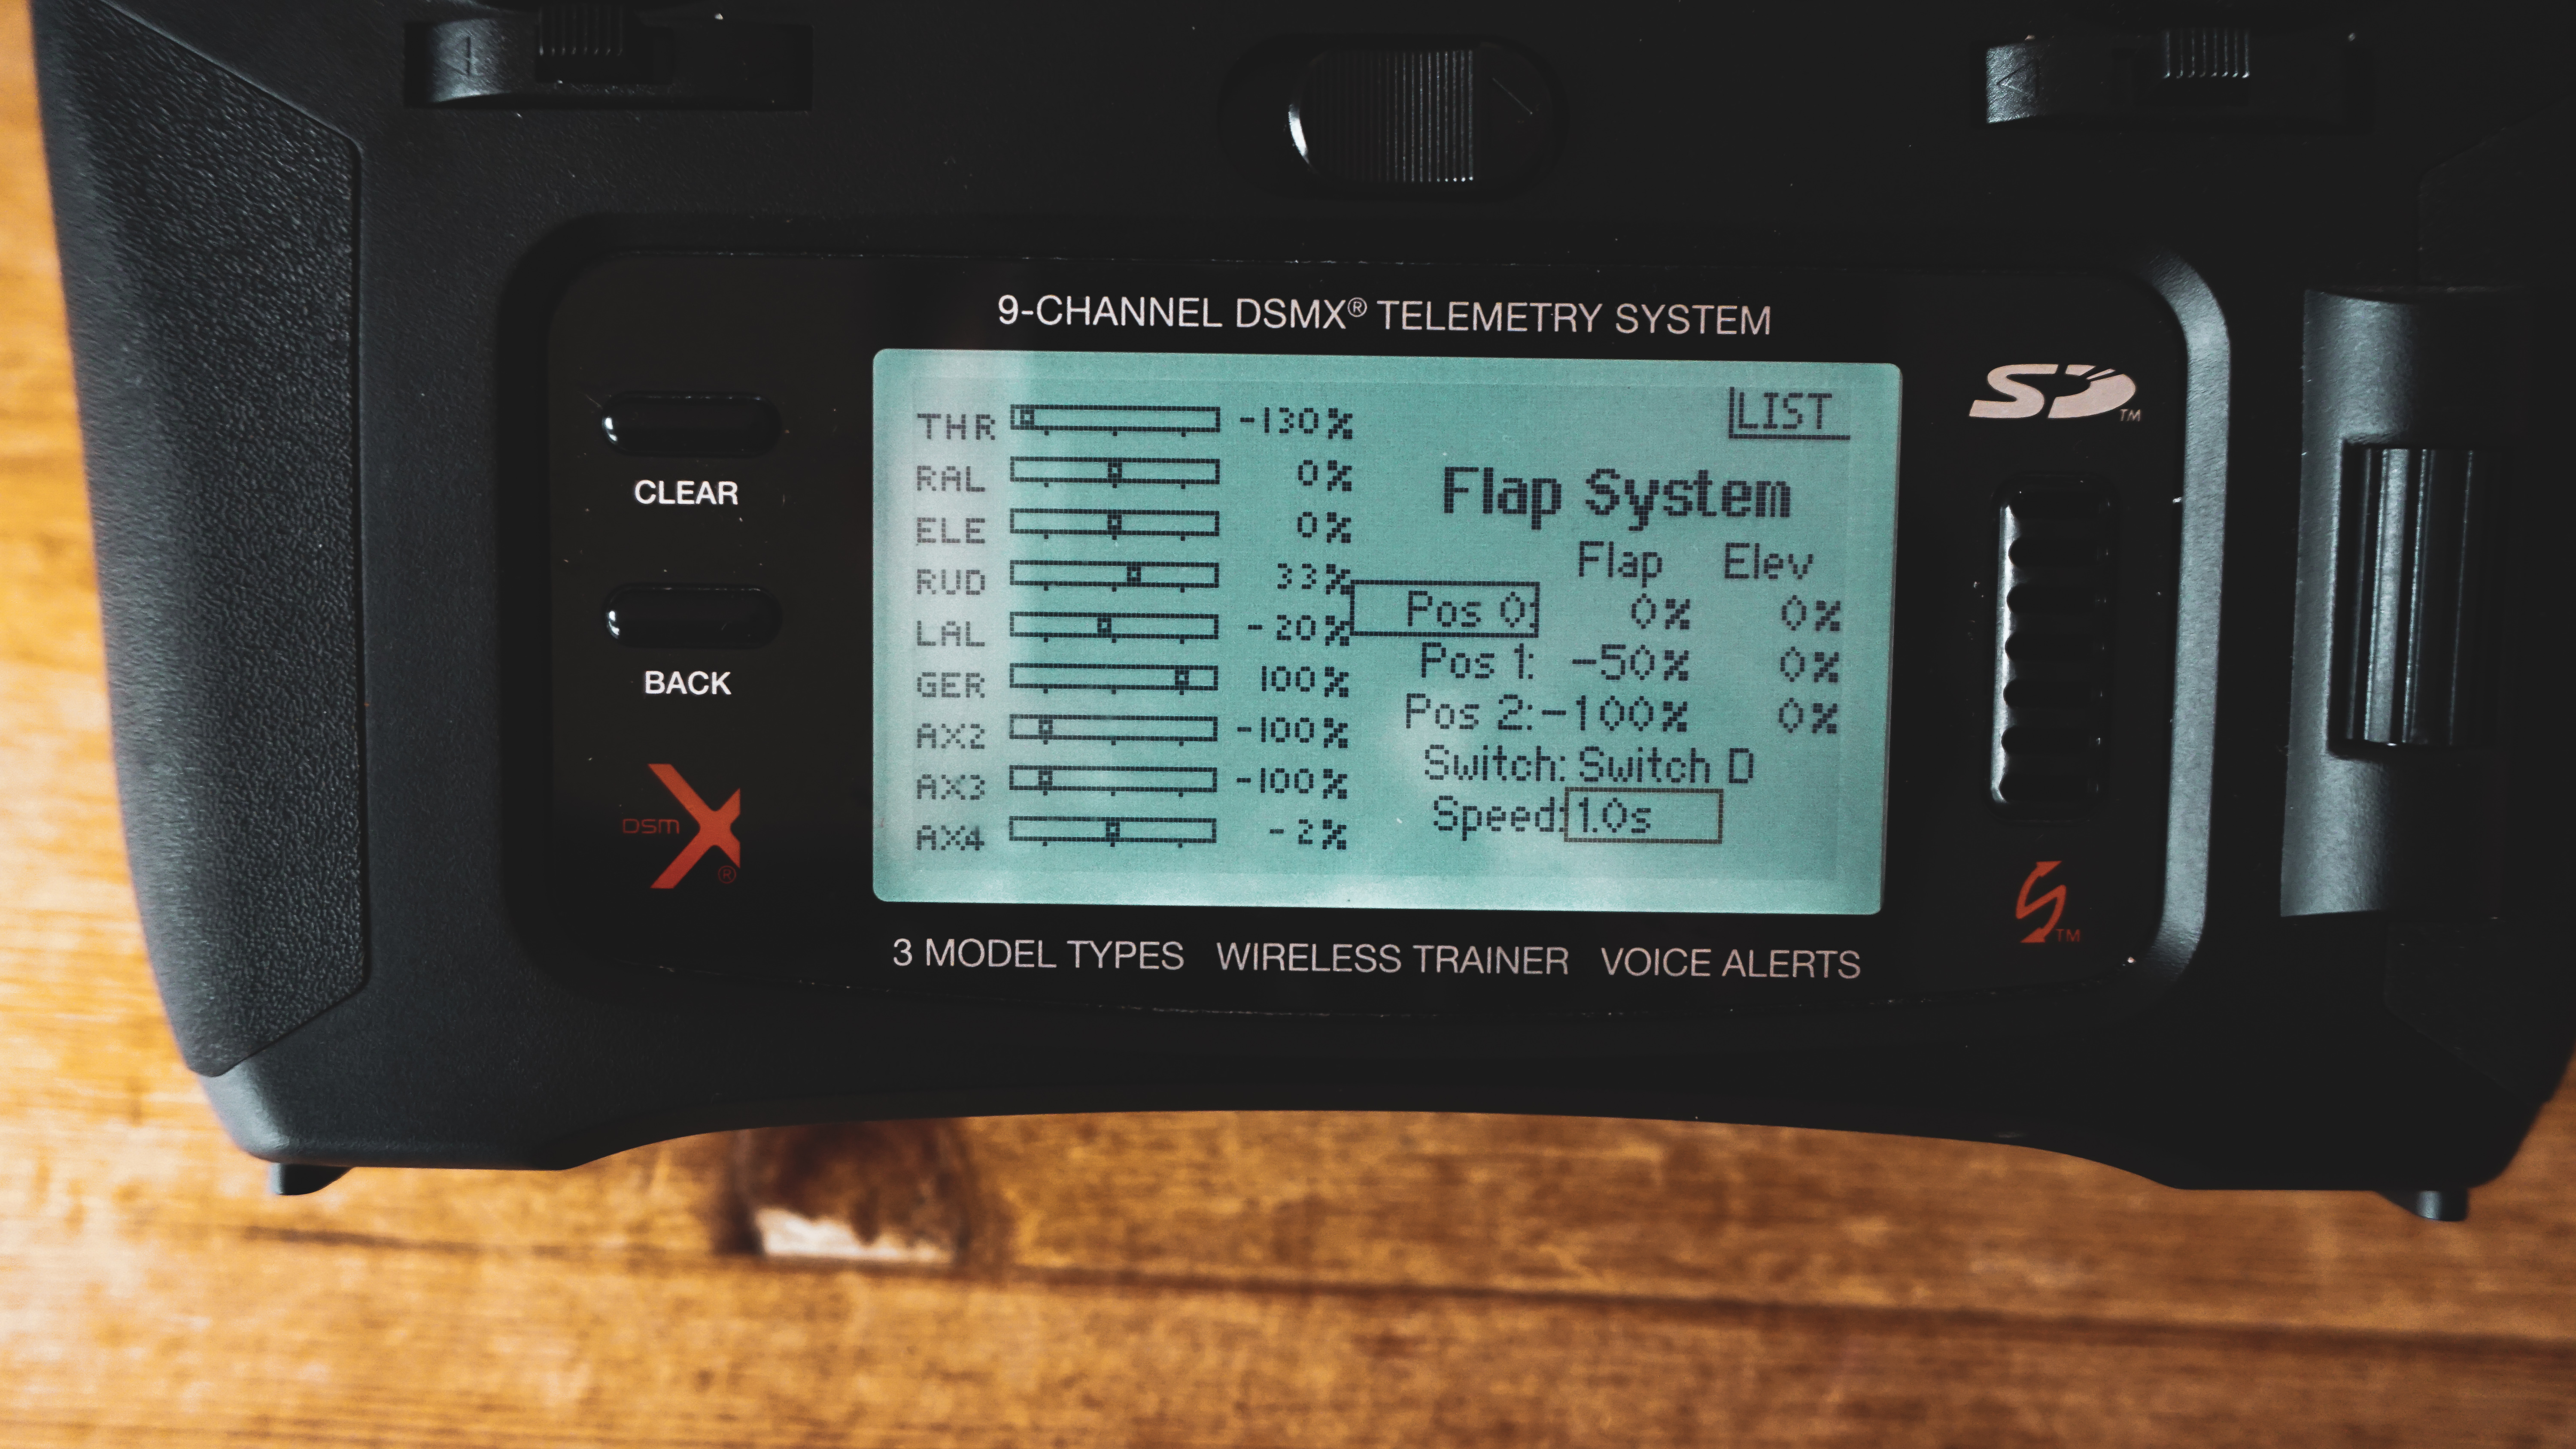 28e4150dbec0e You can adjust throws of the flaps by changing the numbers referring to  each position of the switch. You can also change the speed of the flap  movement.